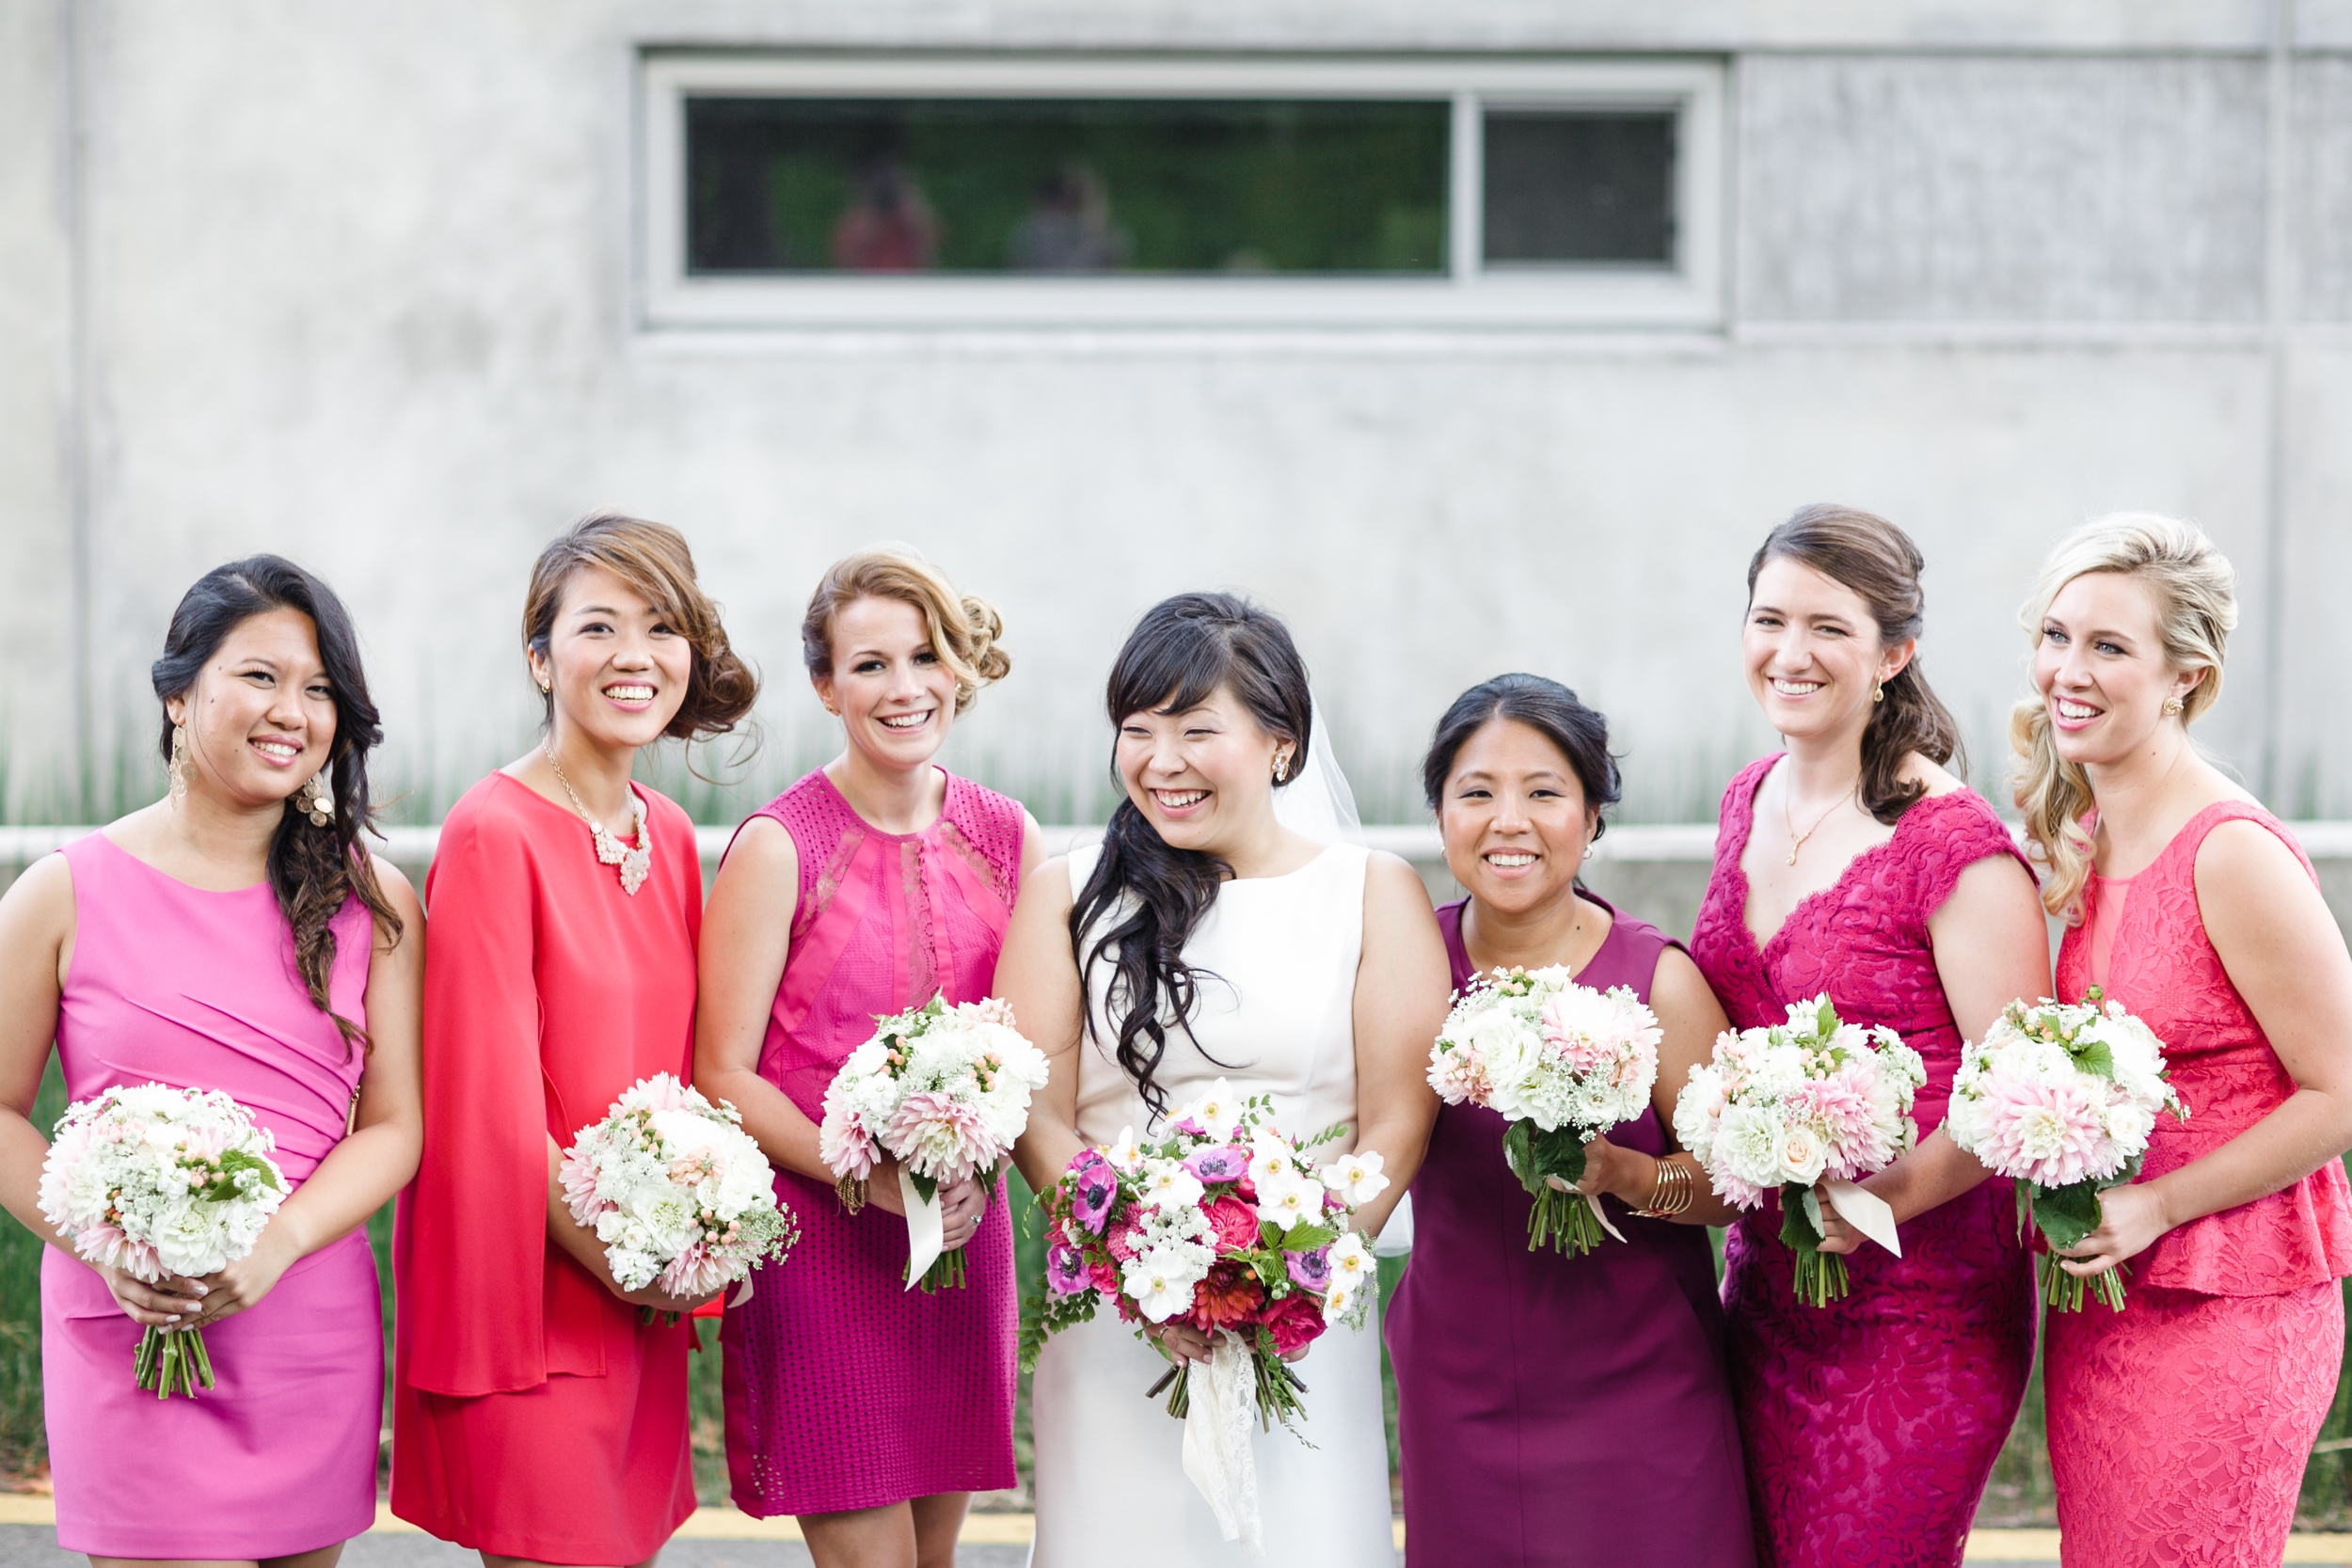 The bridesmaid dresses were perfect! Their light blush and white bouquets popped off the dresses